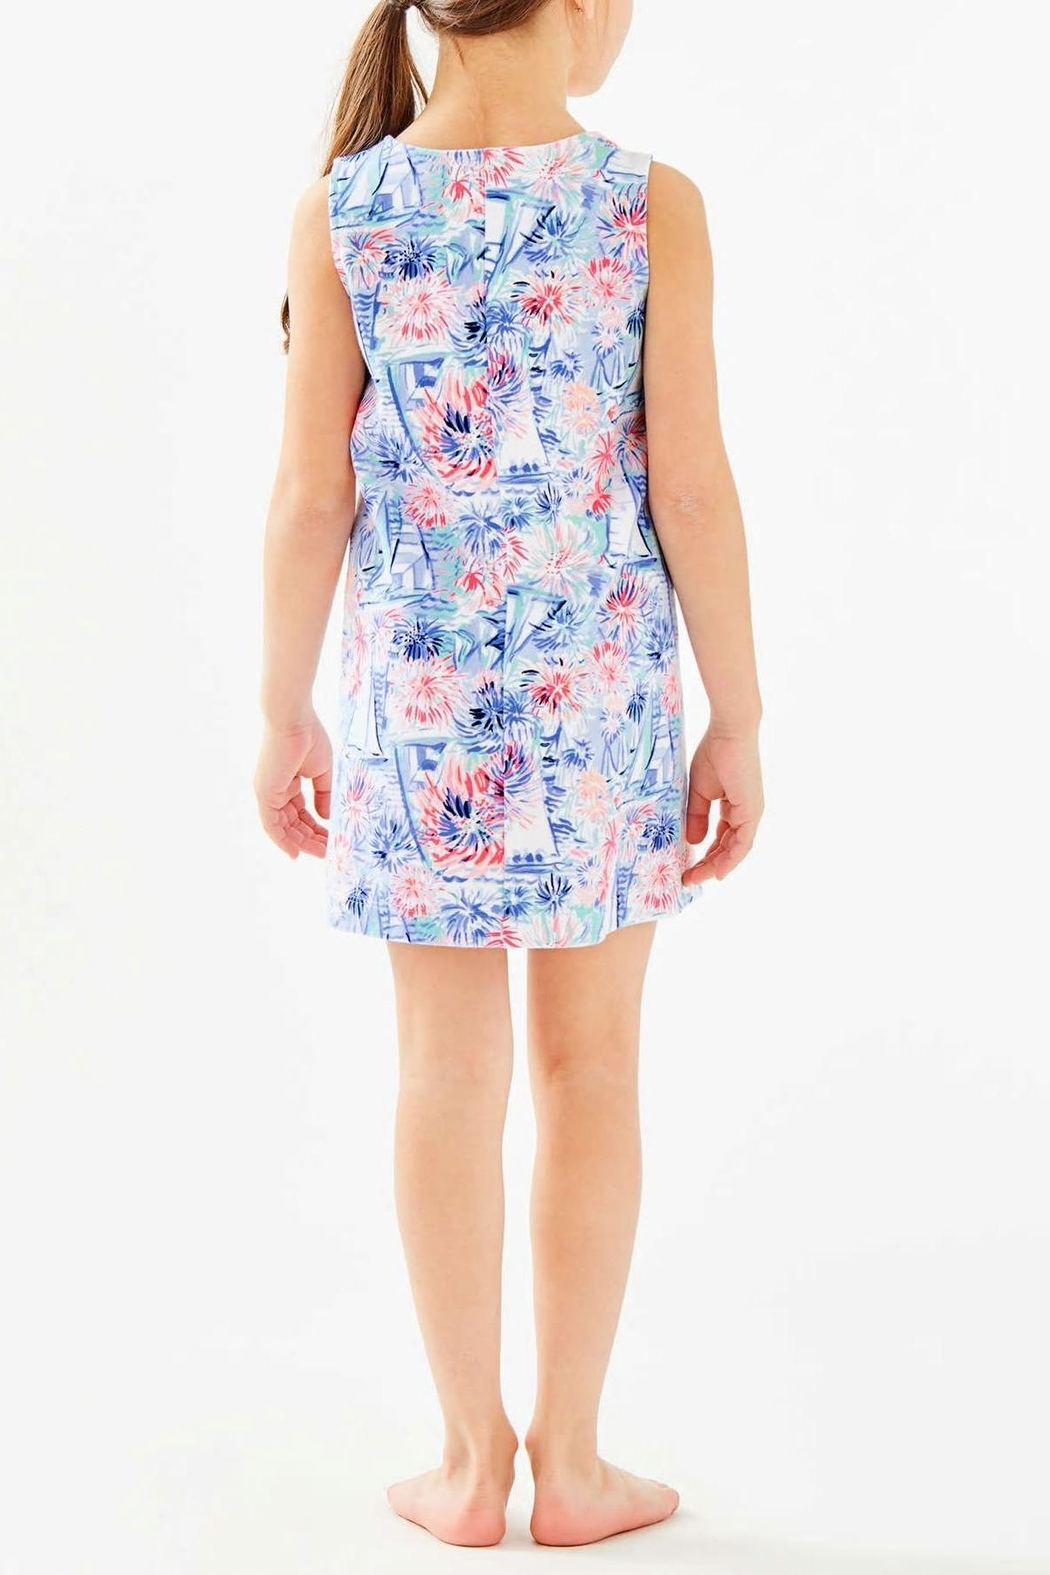 Lilly Pulitzer Mini Harper Shift-Dress - Front Full Image